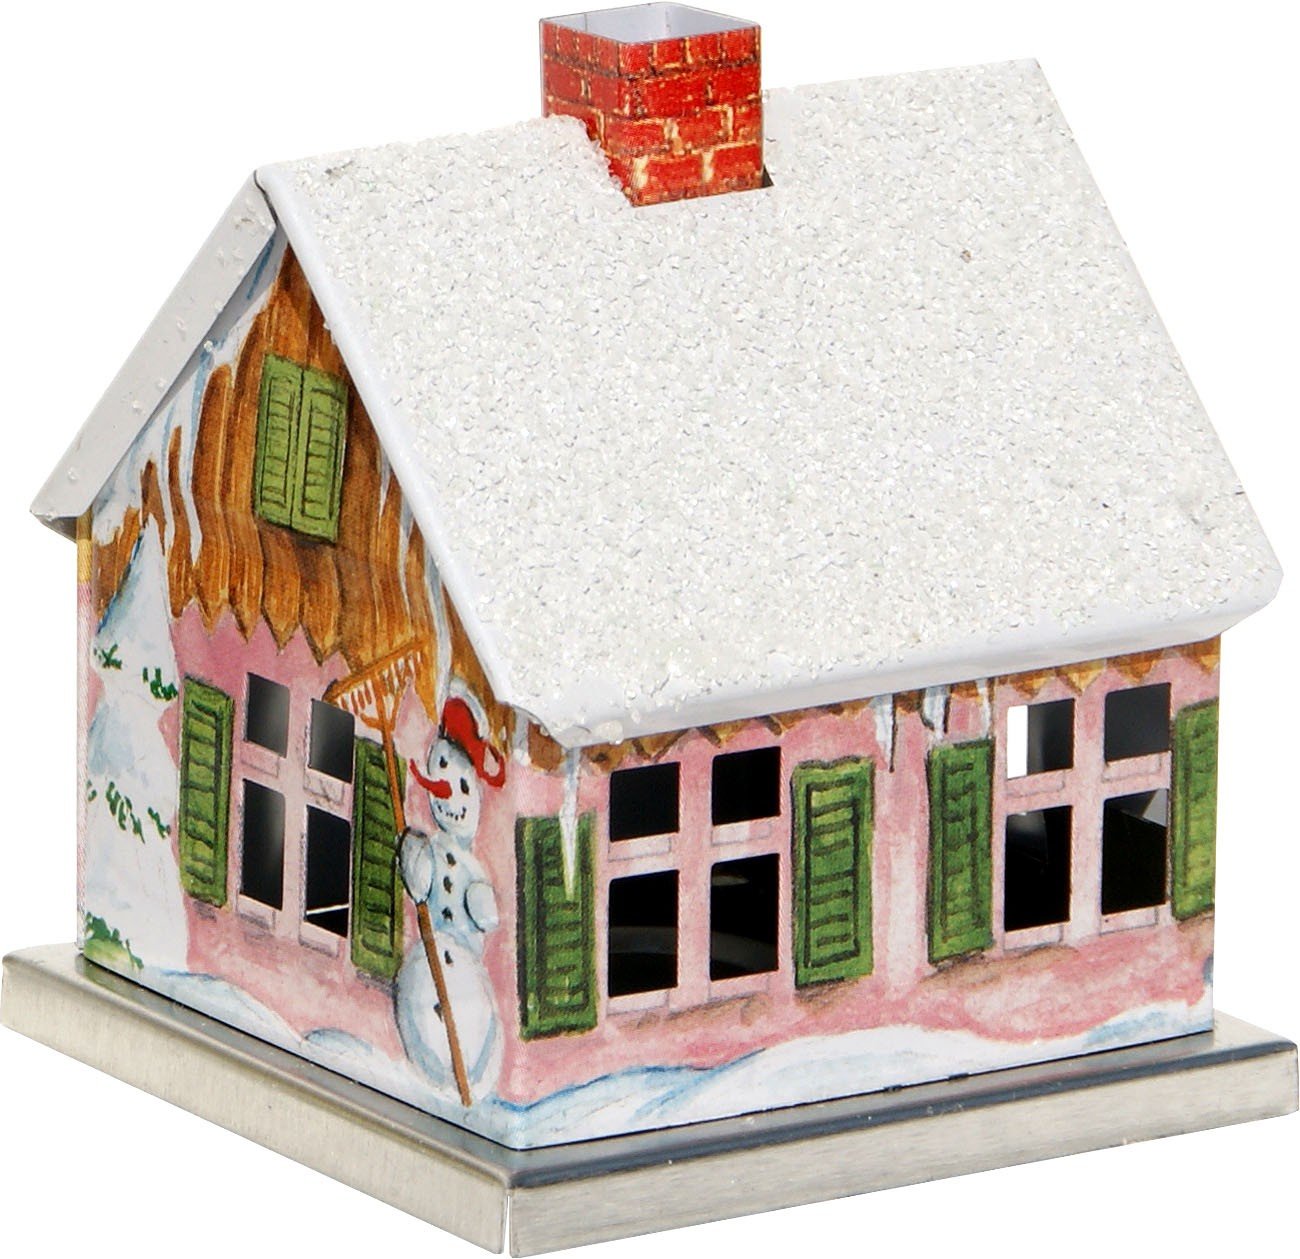 incense smoking house winter design - winter house with snowman